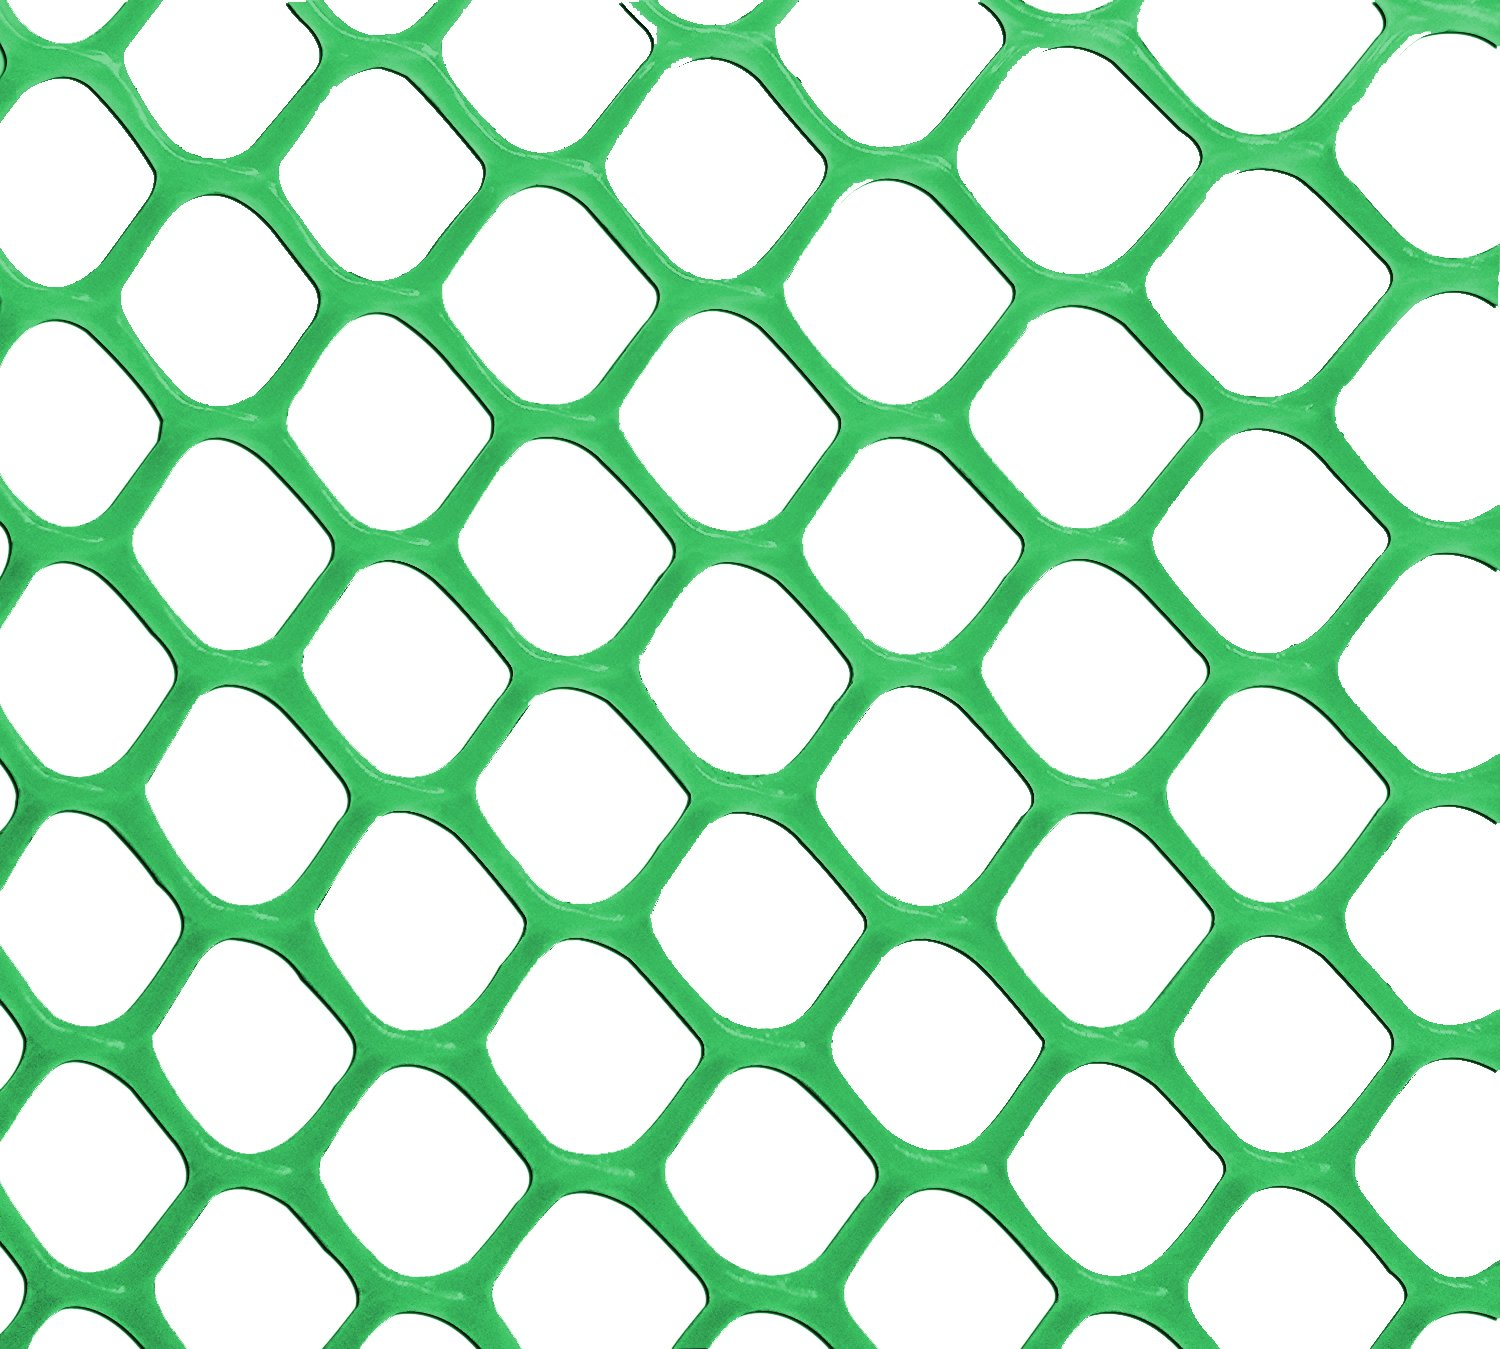 V Protek 5x50ft Plastic Poultry Fence Poultry Netting, Chicken Net Fence For Flower Plants Support,Green